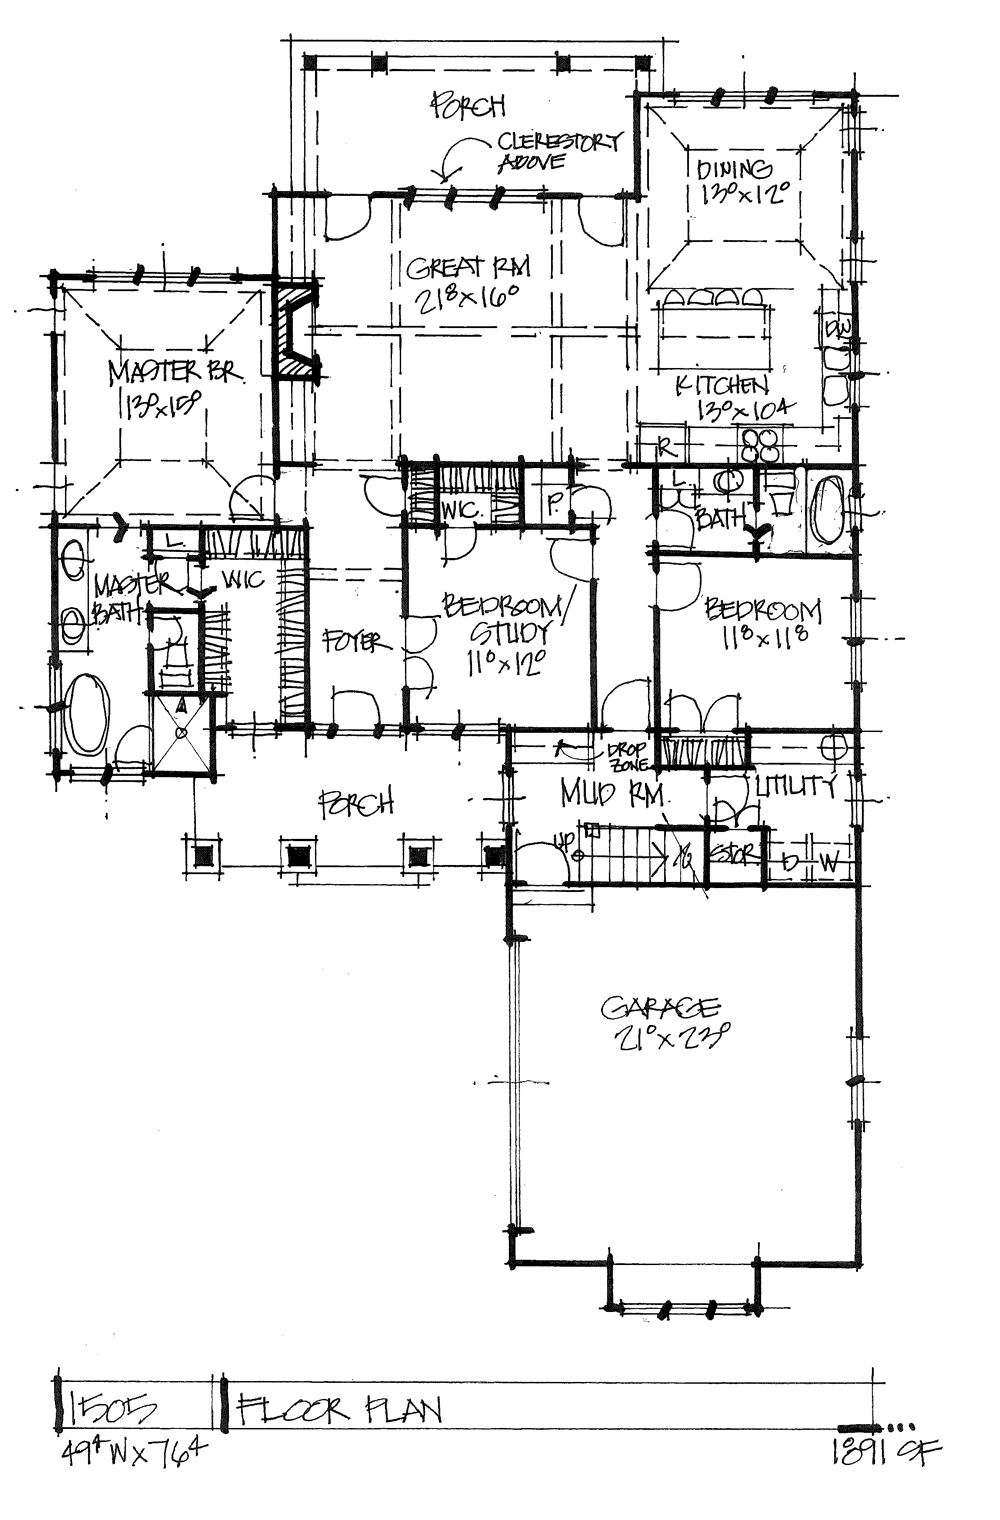 House Plan 1505 One Story Craftsman Energy Efficient House Plans House Plans Home Design Floor Plans